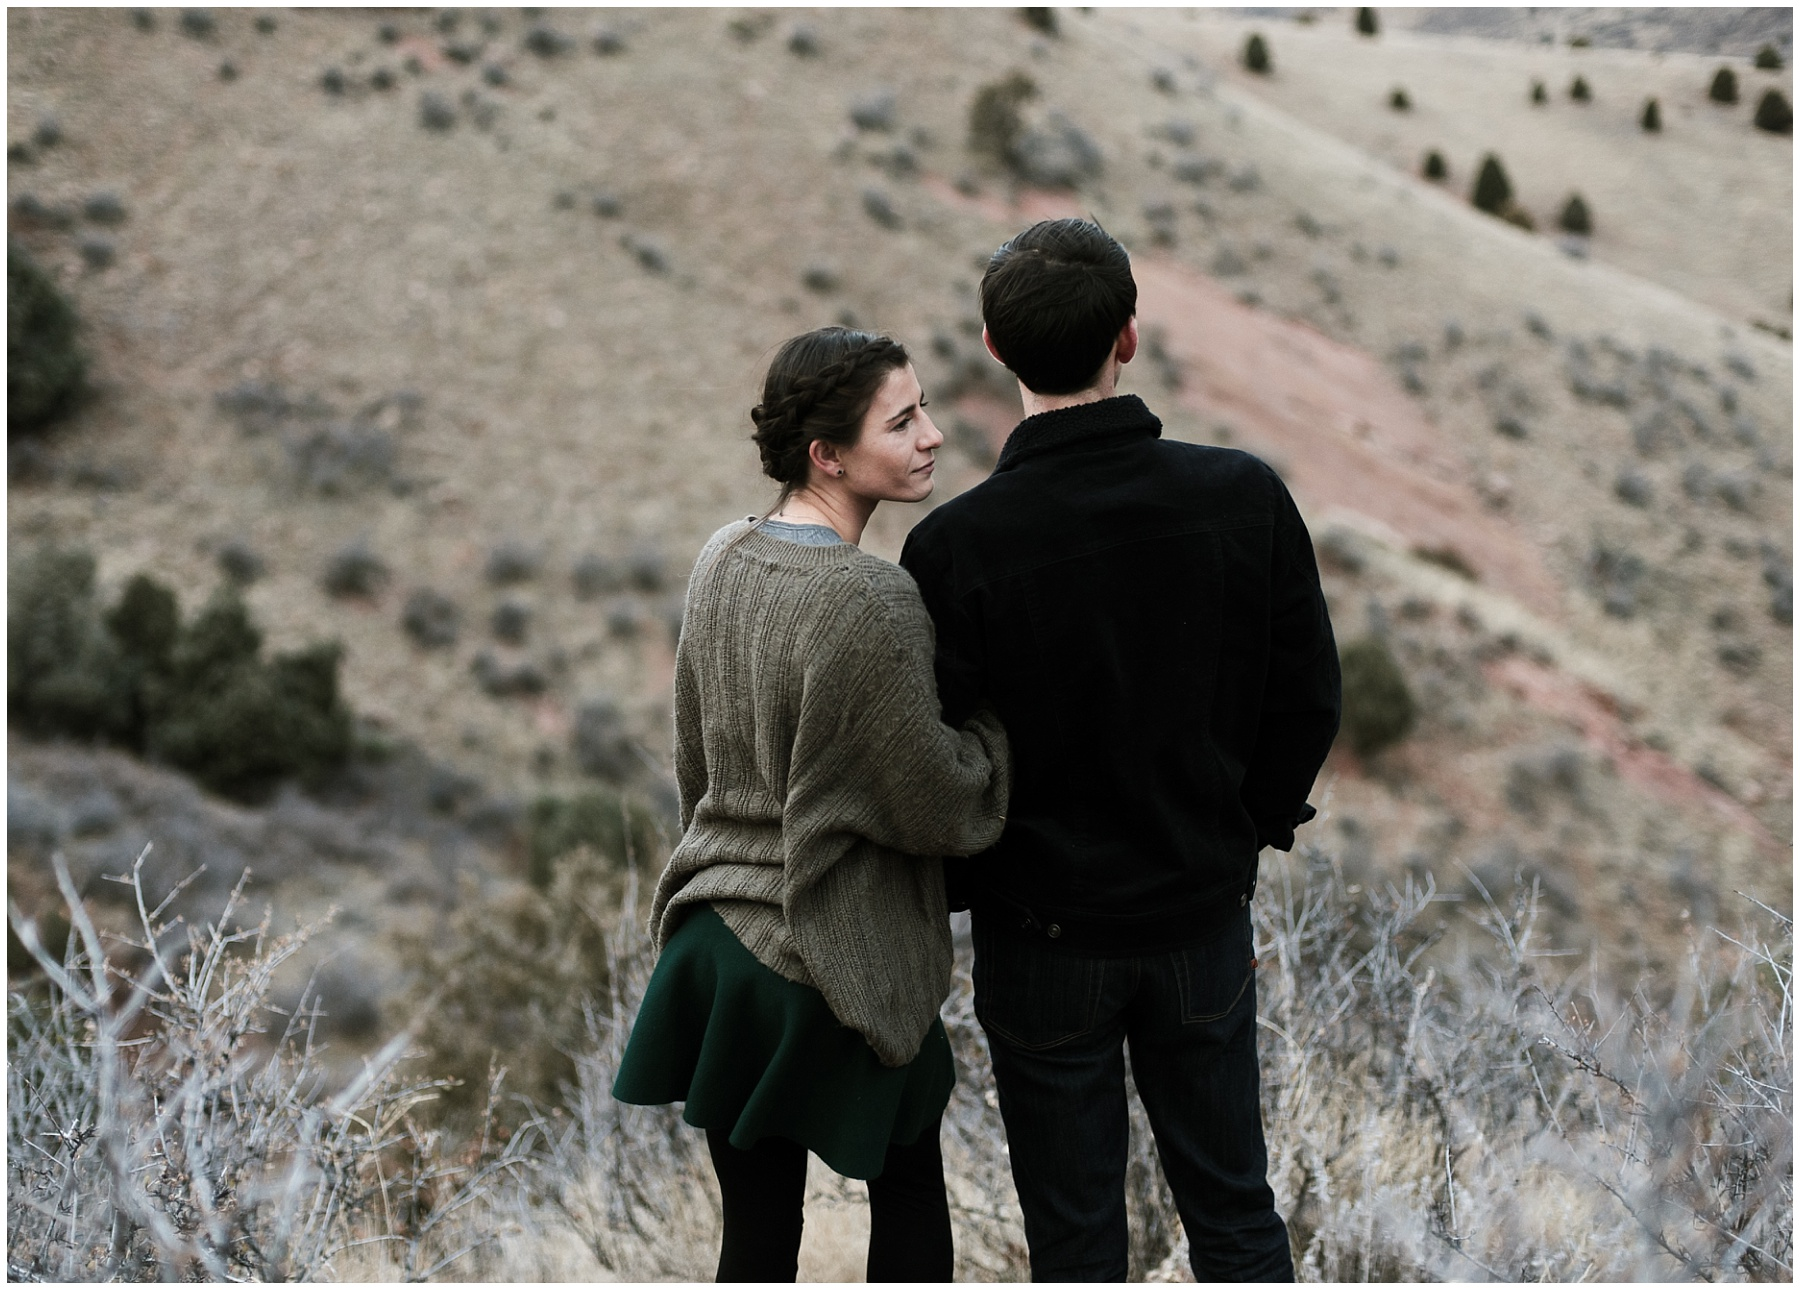 Katesalleyphotography-160_engagement shoot at Red Rocks.jpg